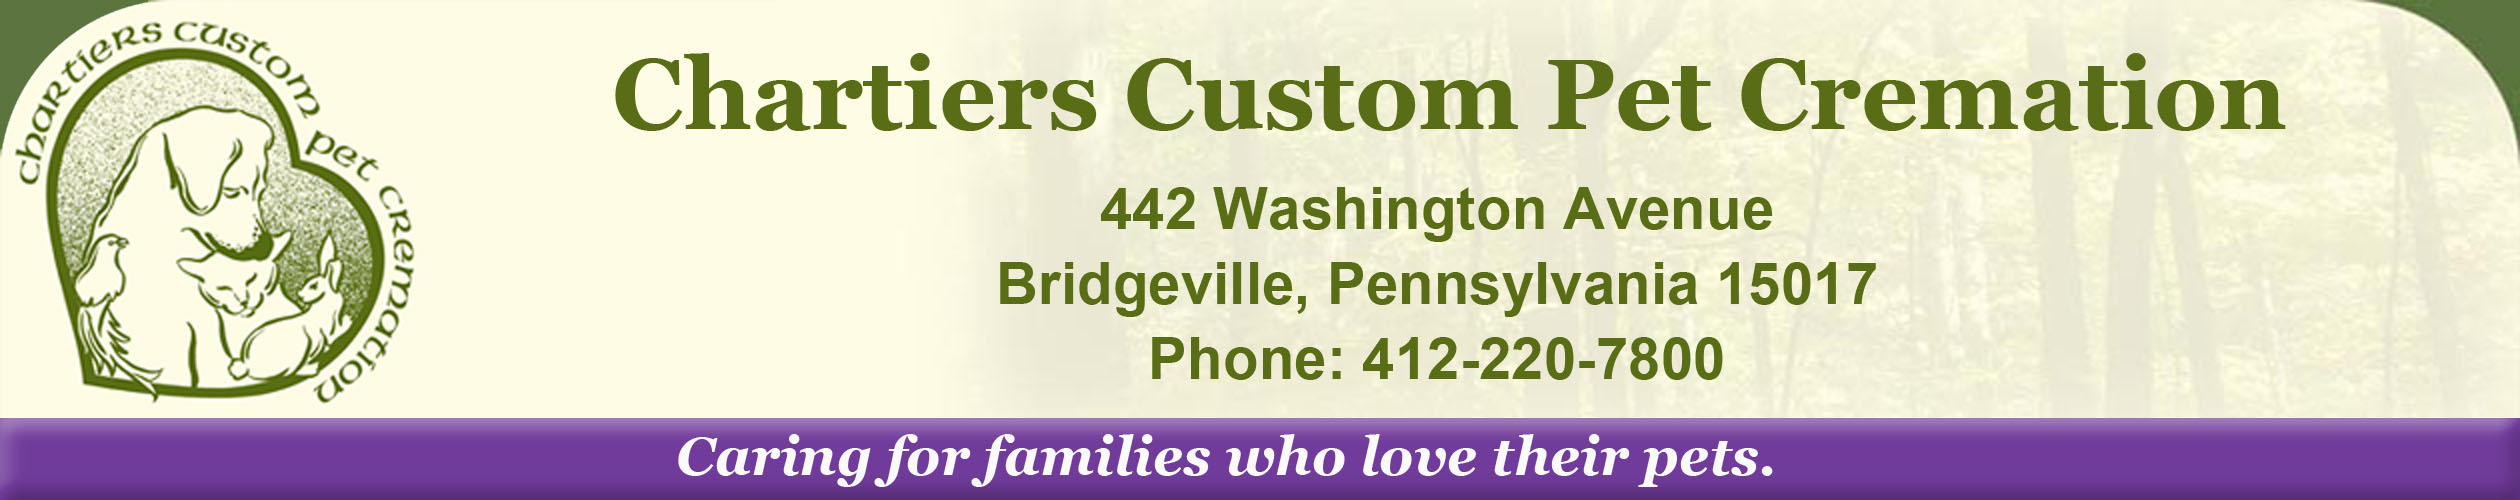 Chartiers Custom Pet Cremation